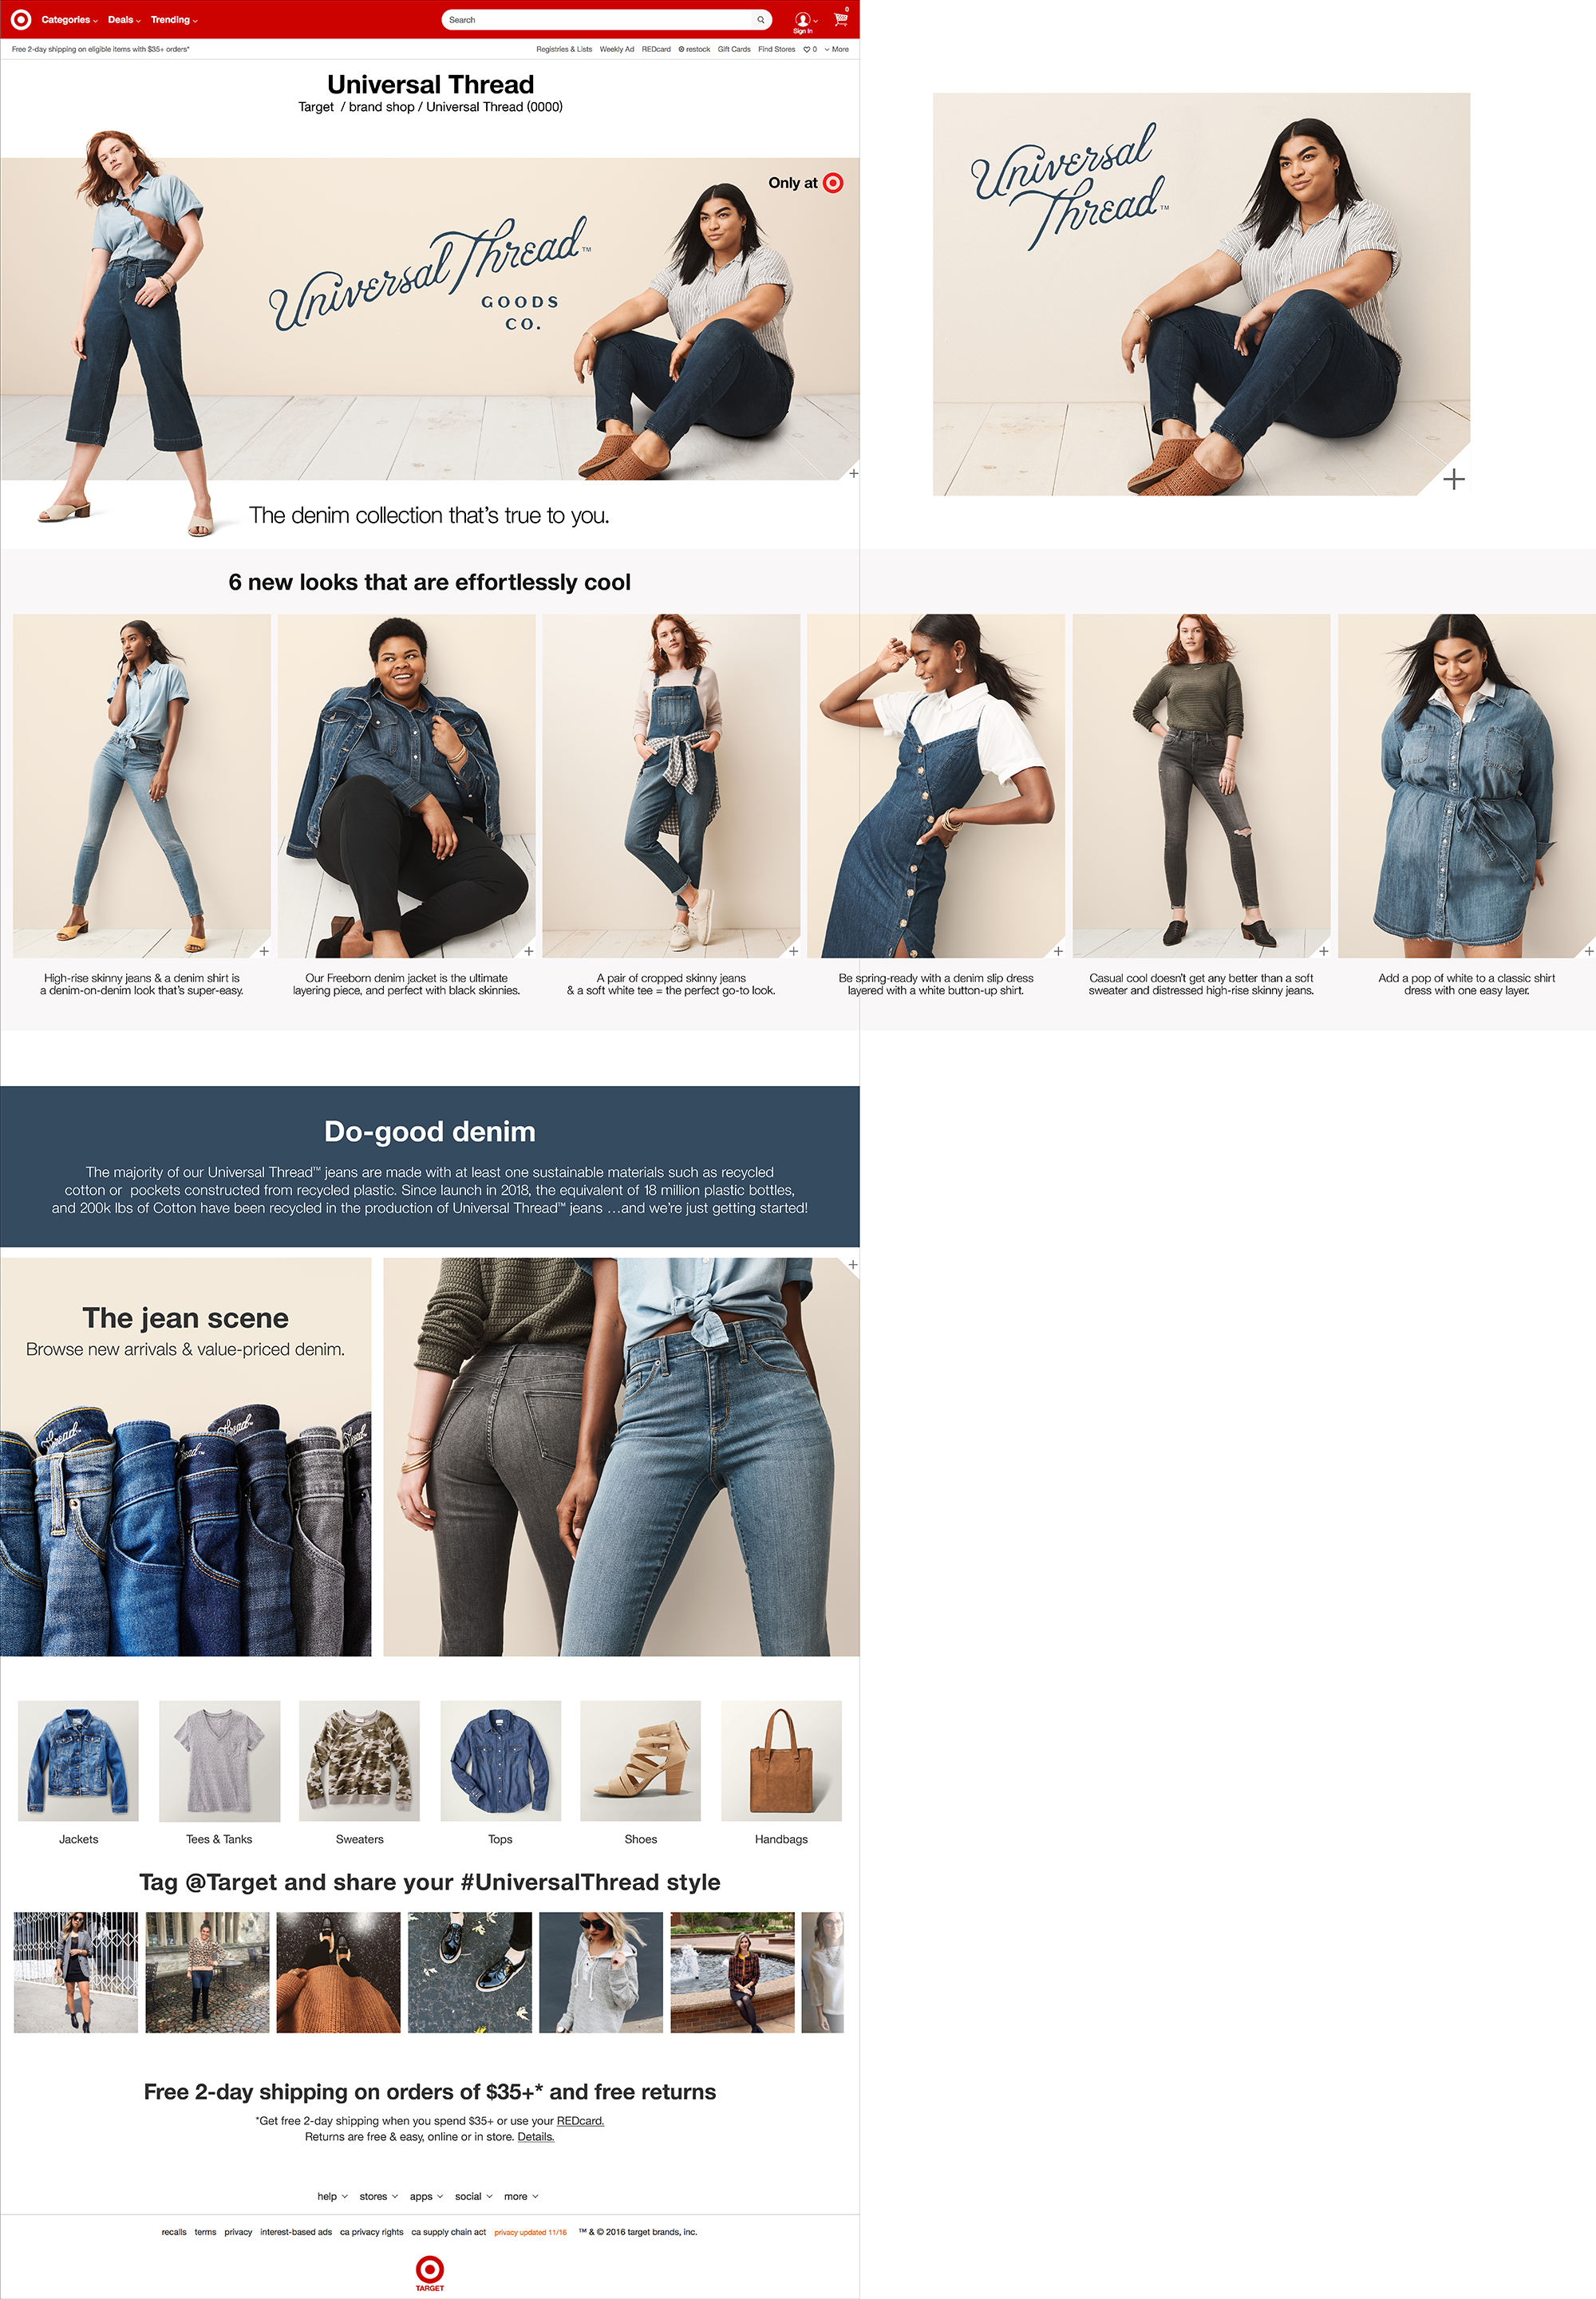 Target Universal Thread Brand Page